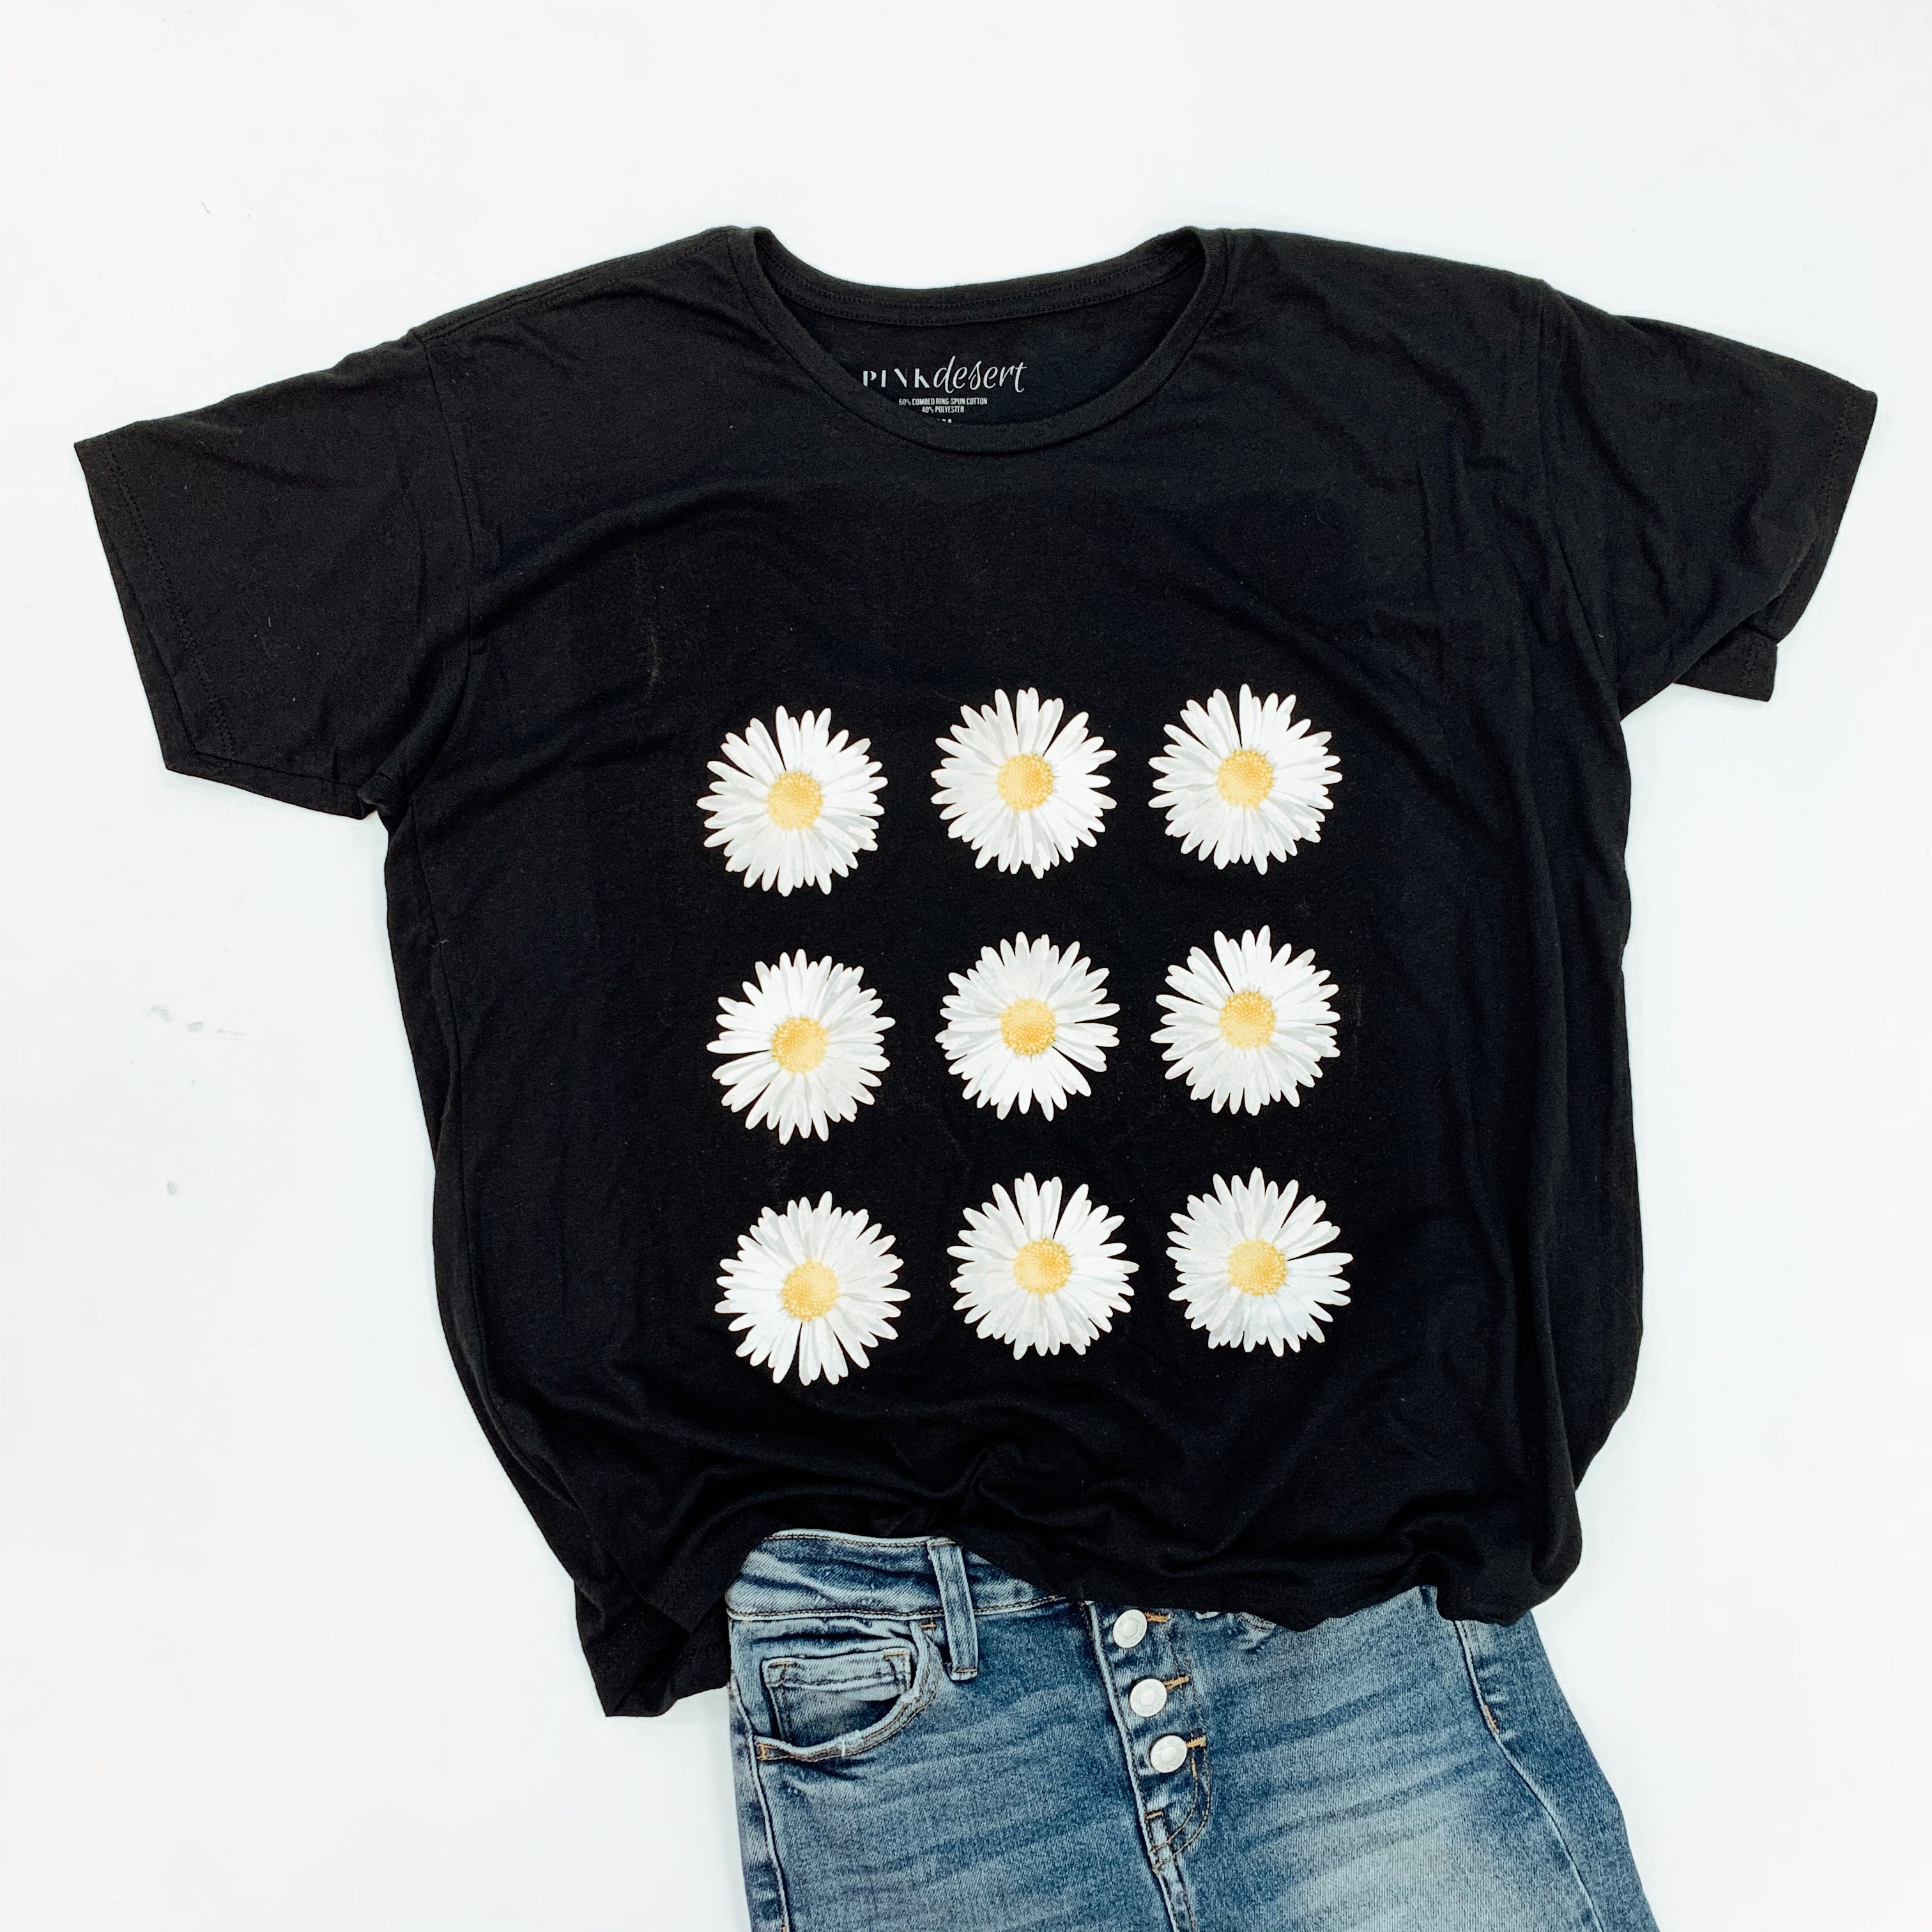 THE DAISY GRAPHIC TEE IN BLACK BY PINK DESERT